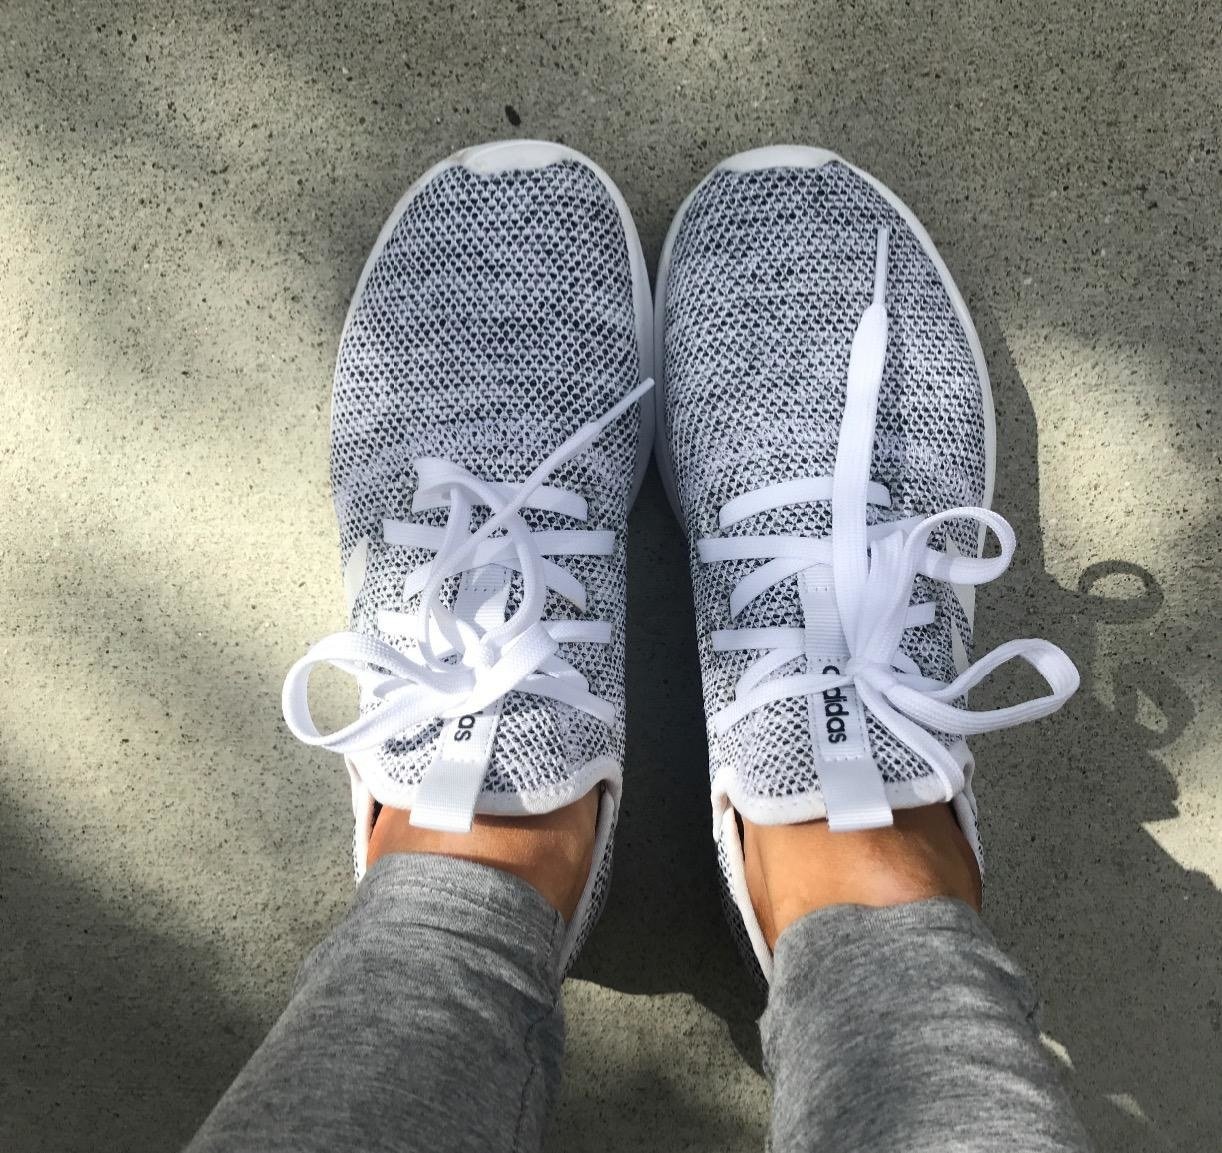 a reviewer wearing the sneakers in grey